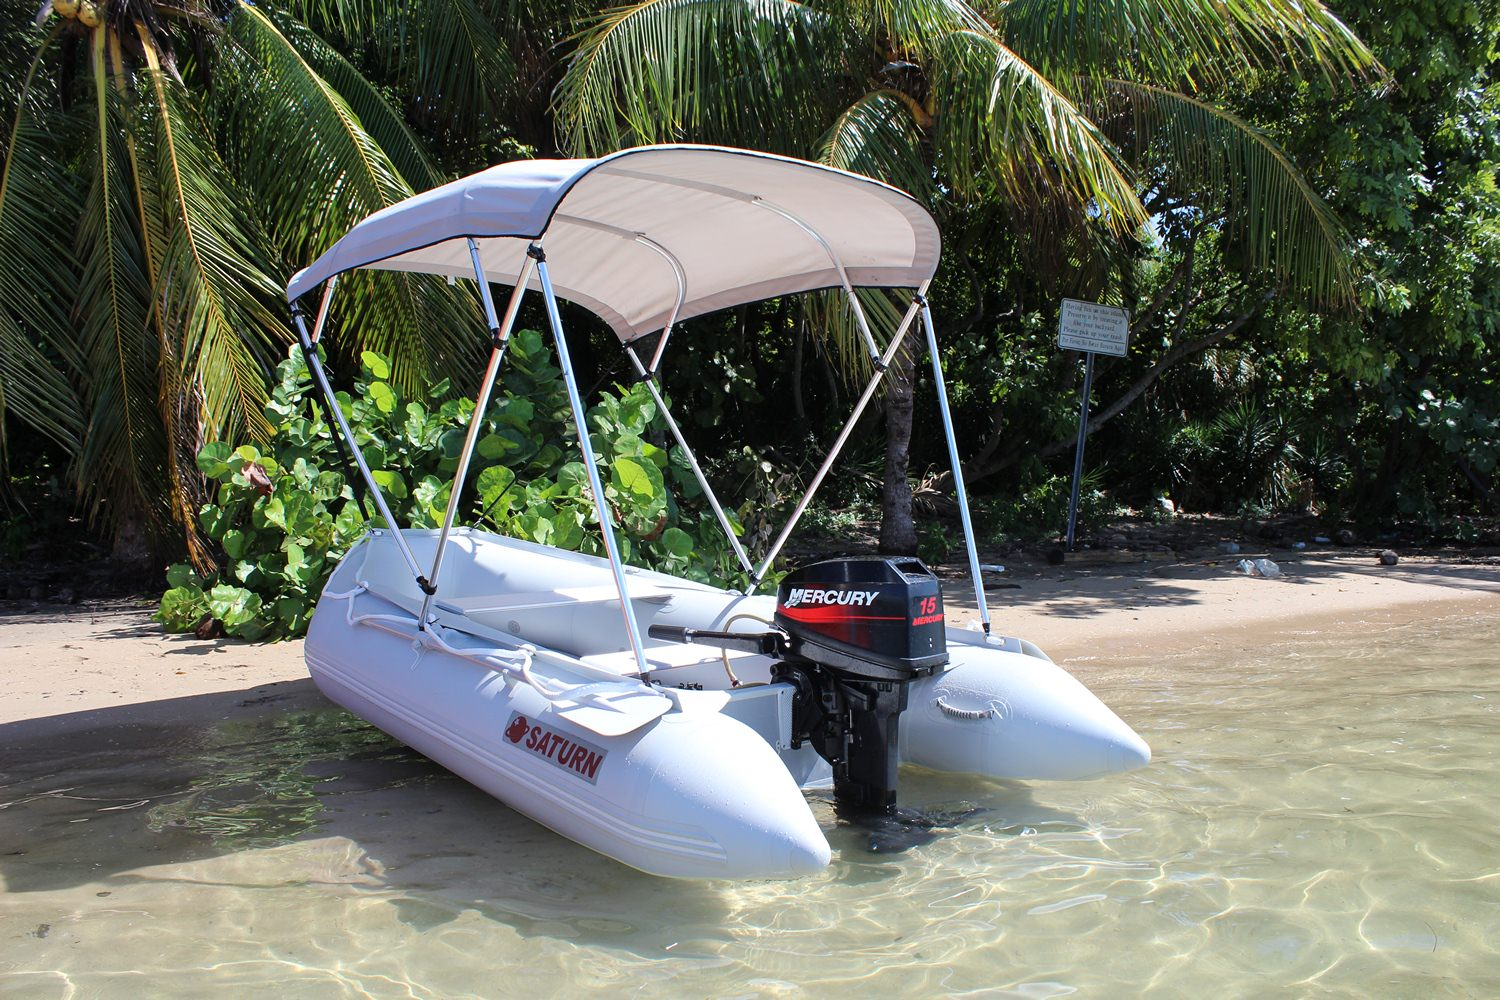 11 Saturn Dinghy Tender Sport Boat